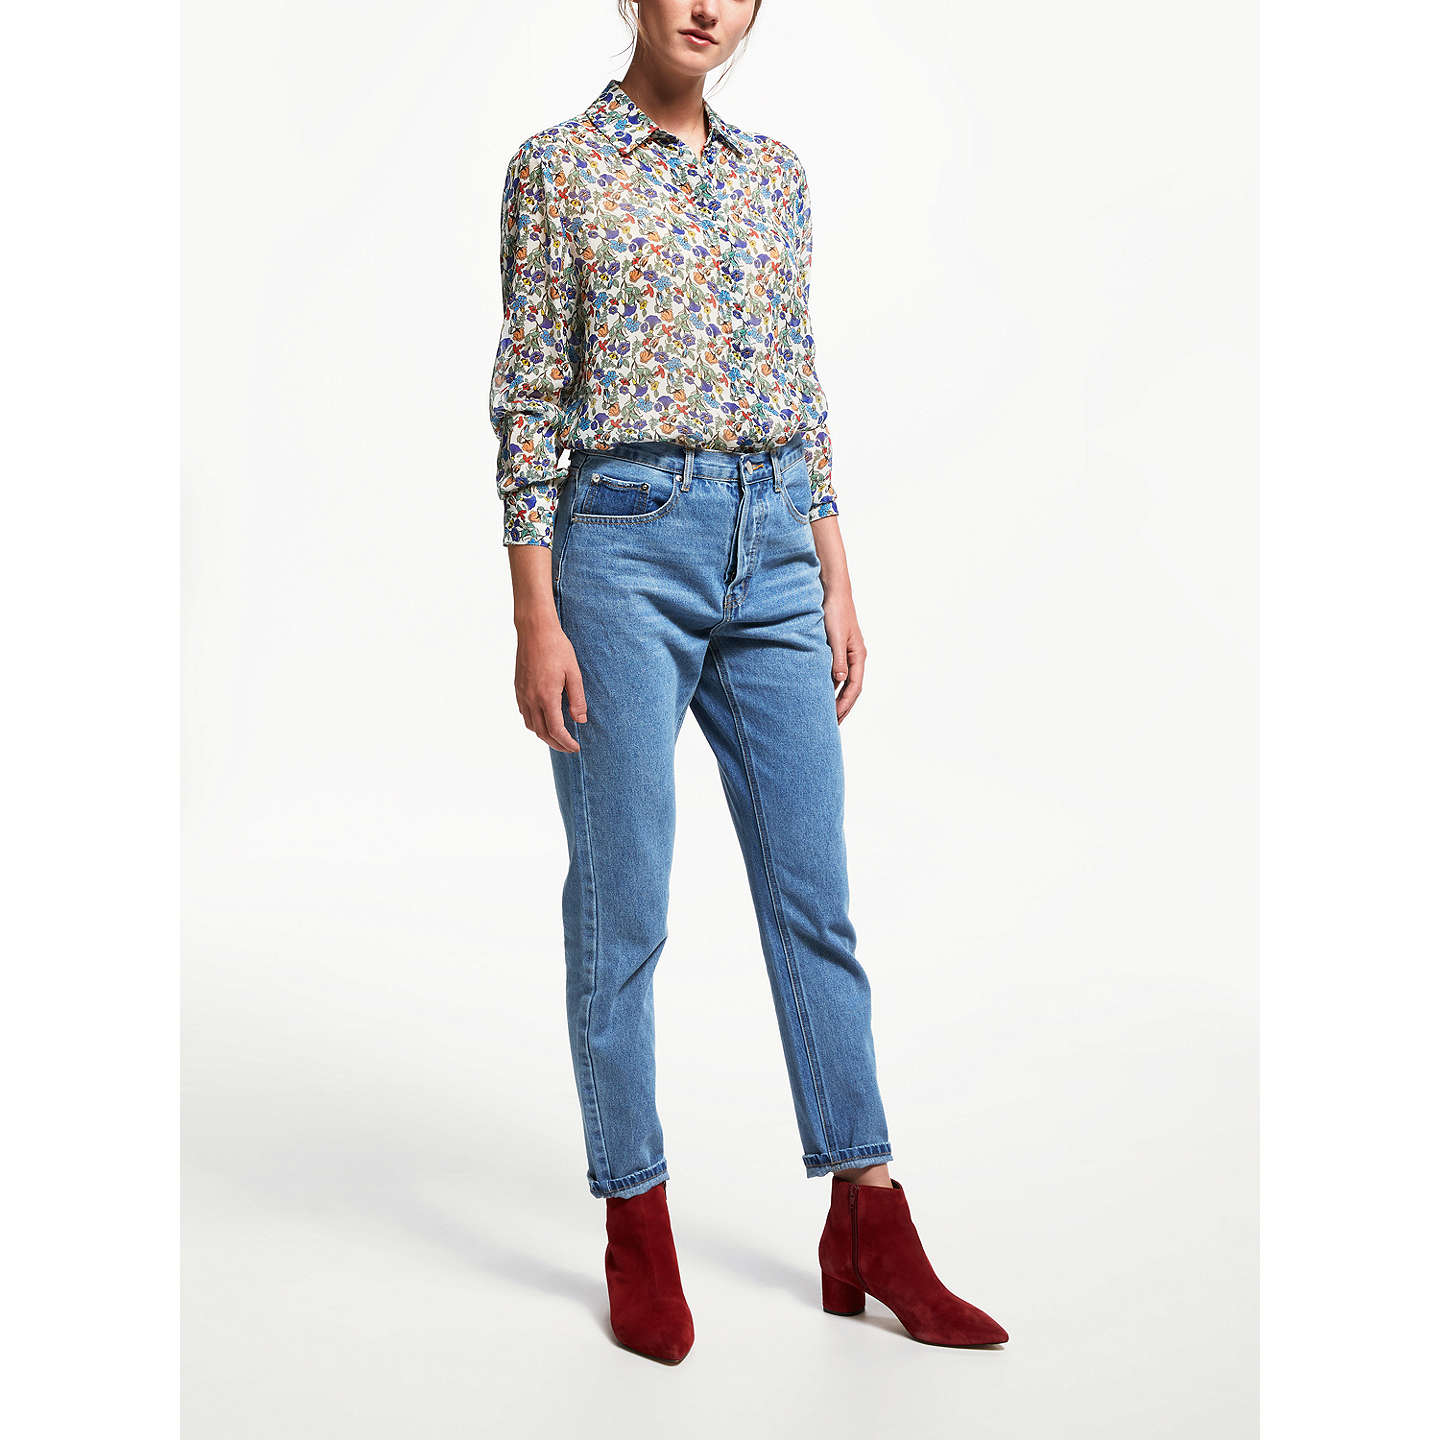 BuyFinery Senna Print Georgette Blouse, Multi, 8 Online at johnlewis.com